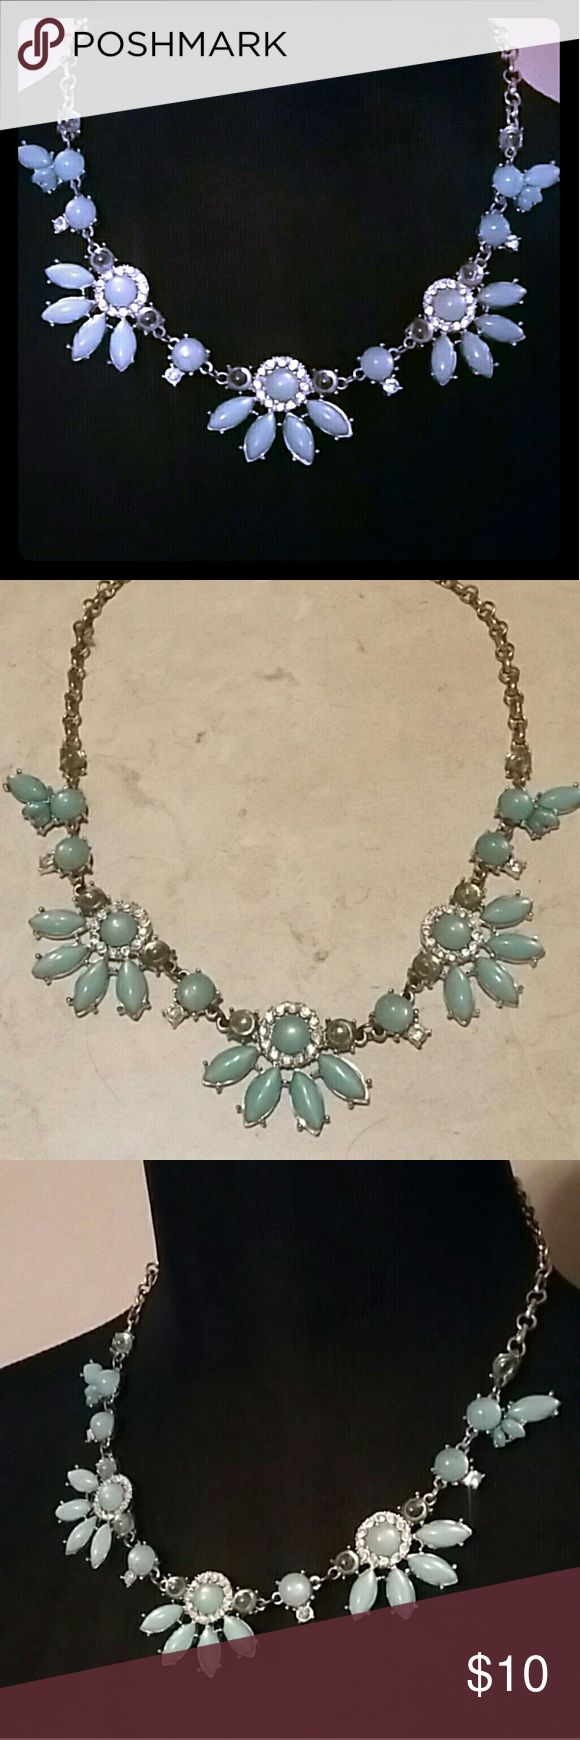 Cute & CHIC gold and teal necklace Cute & CHIC gold and teal necklace Jewelry Necklaces